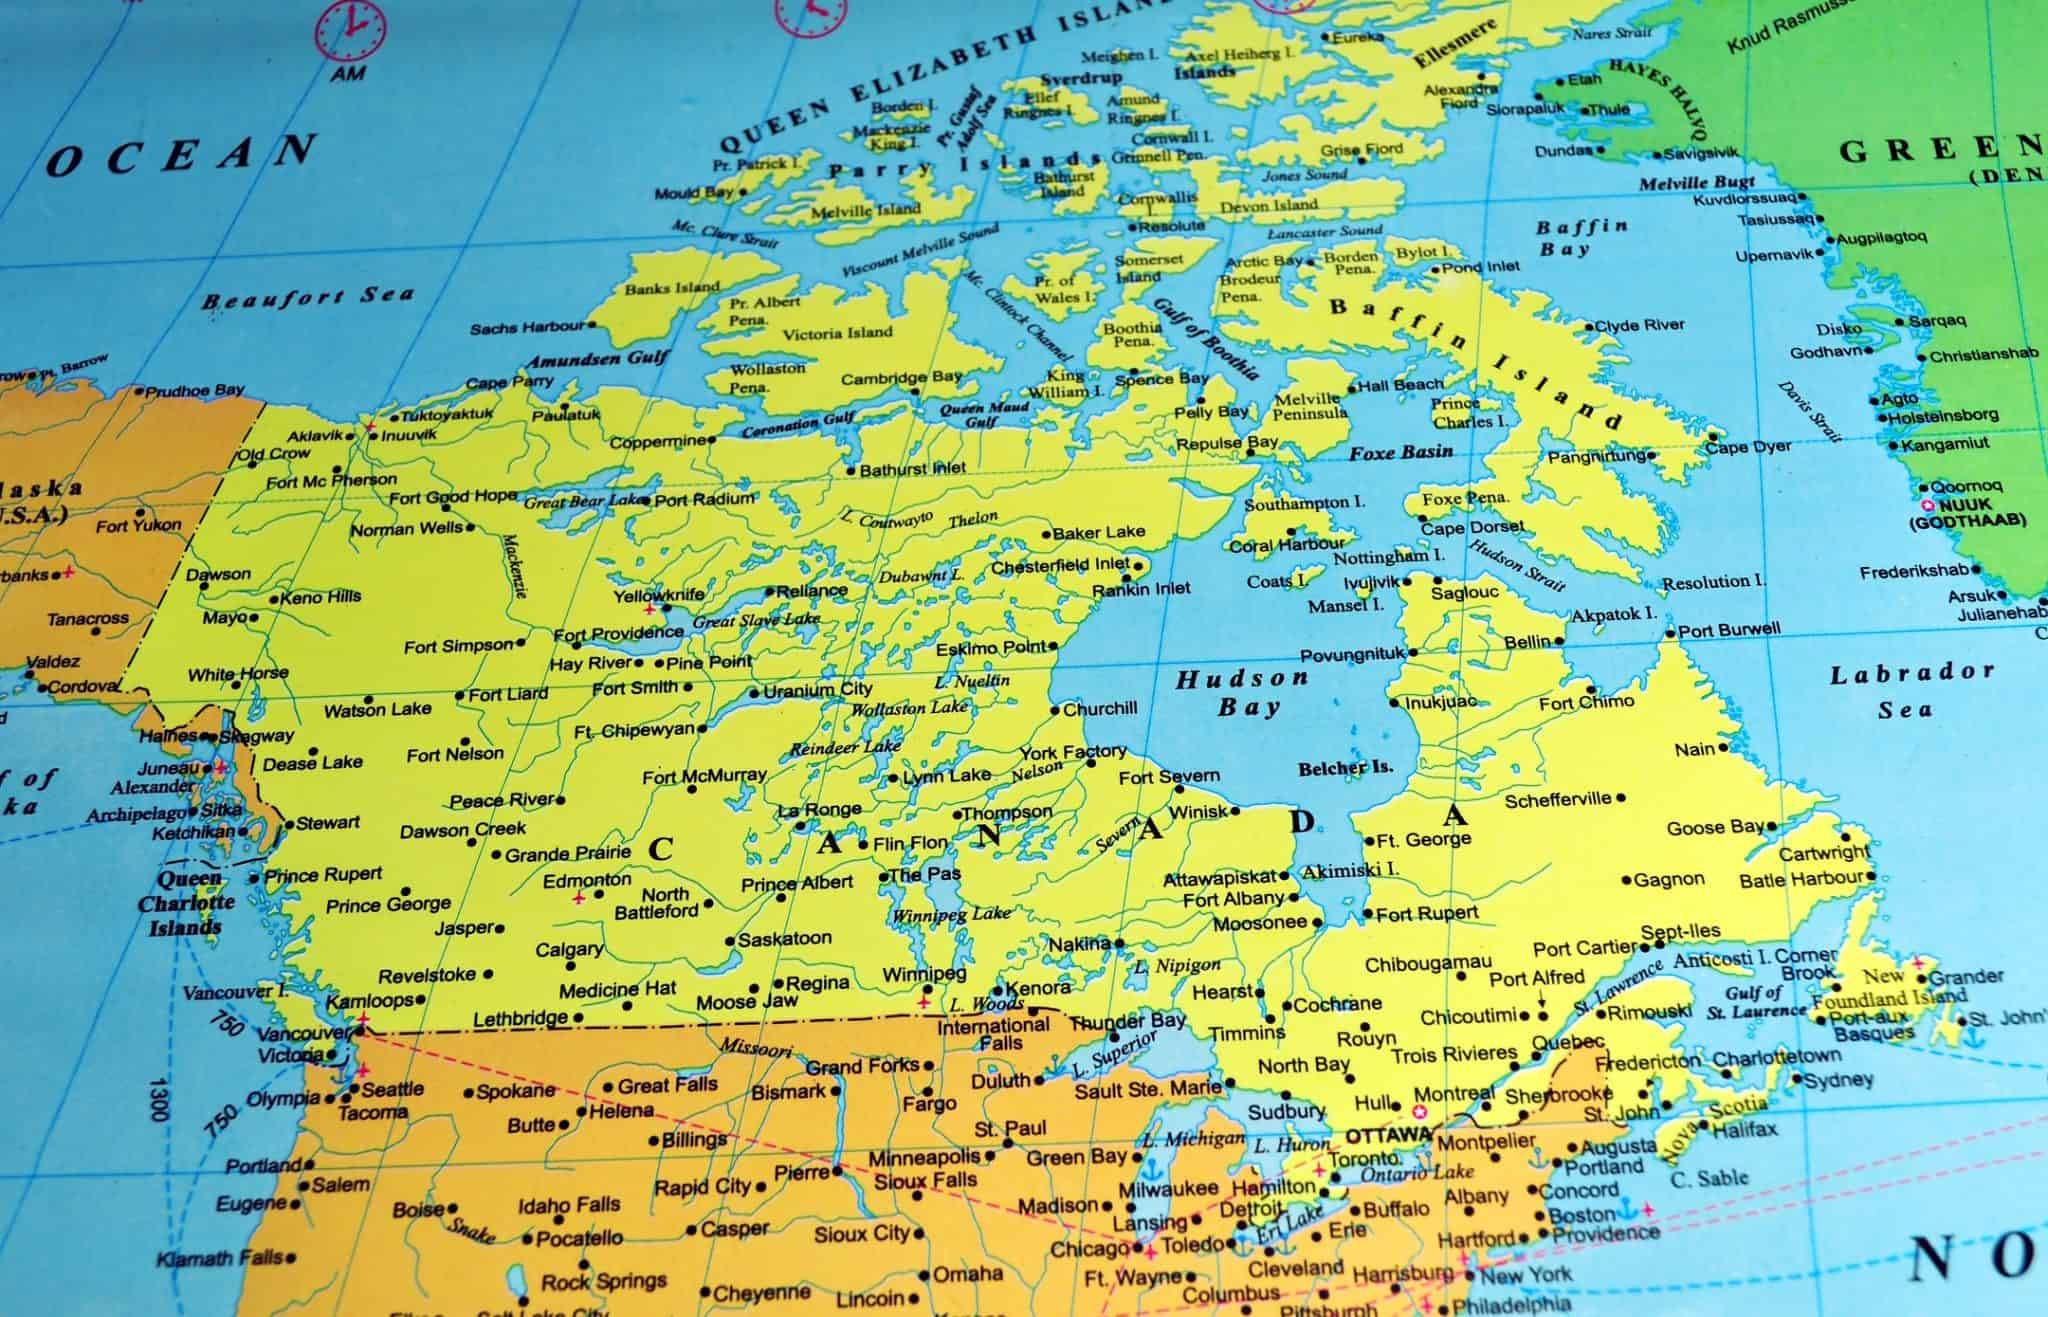 map of toronto canada and usa with What You Dont Know About Canada on Canad C3 A1 likewise MS Victory II 1864 further Watch also Vancouver Bc Canada in addition Capri.